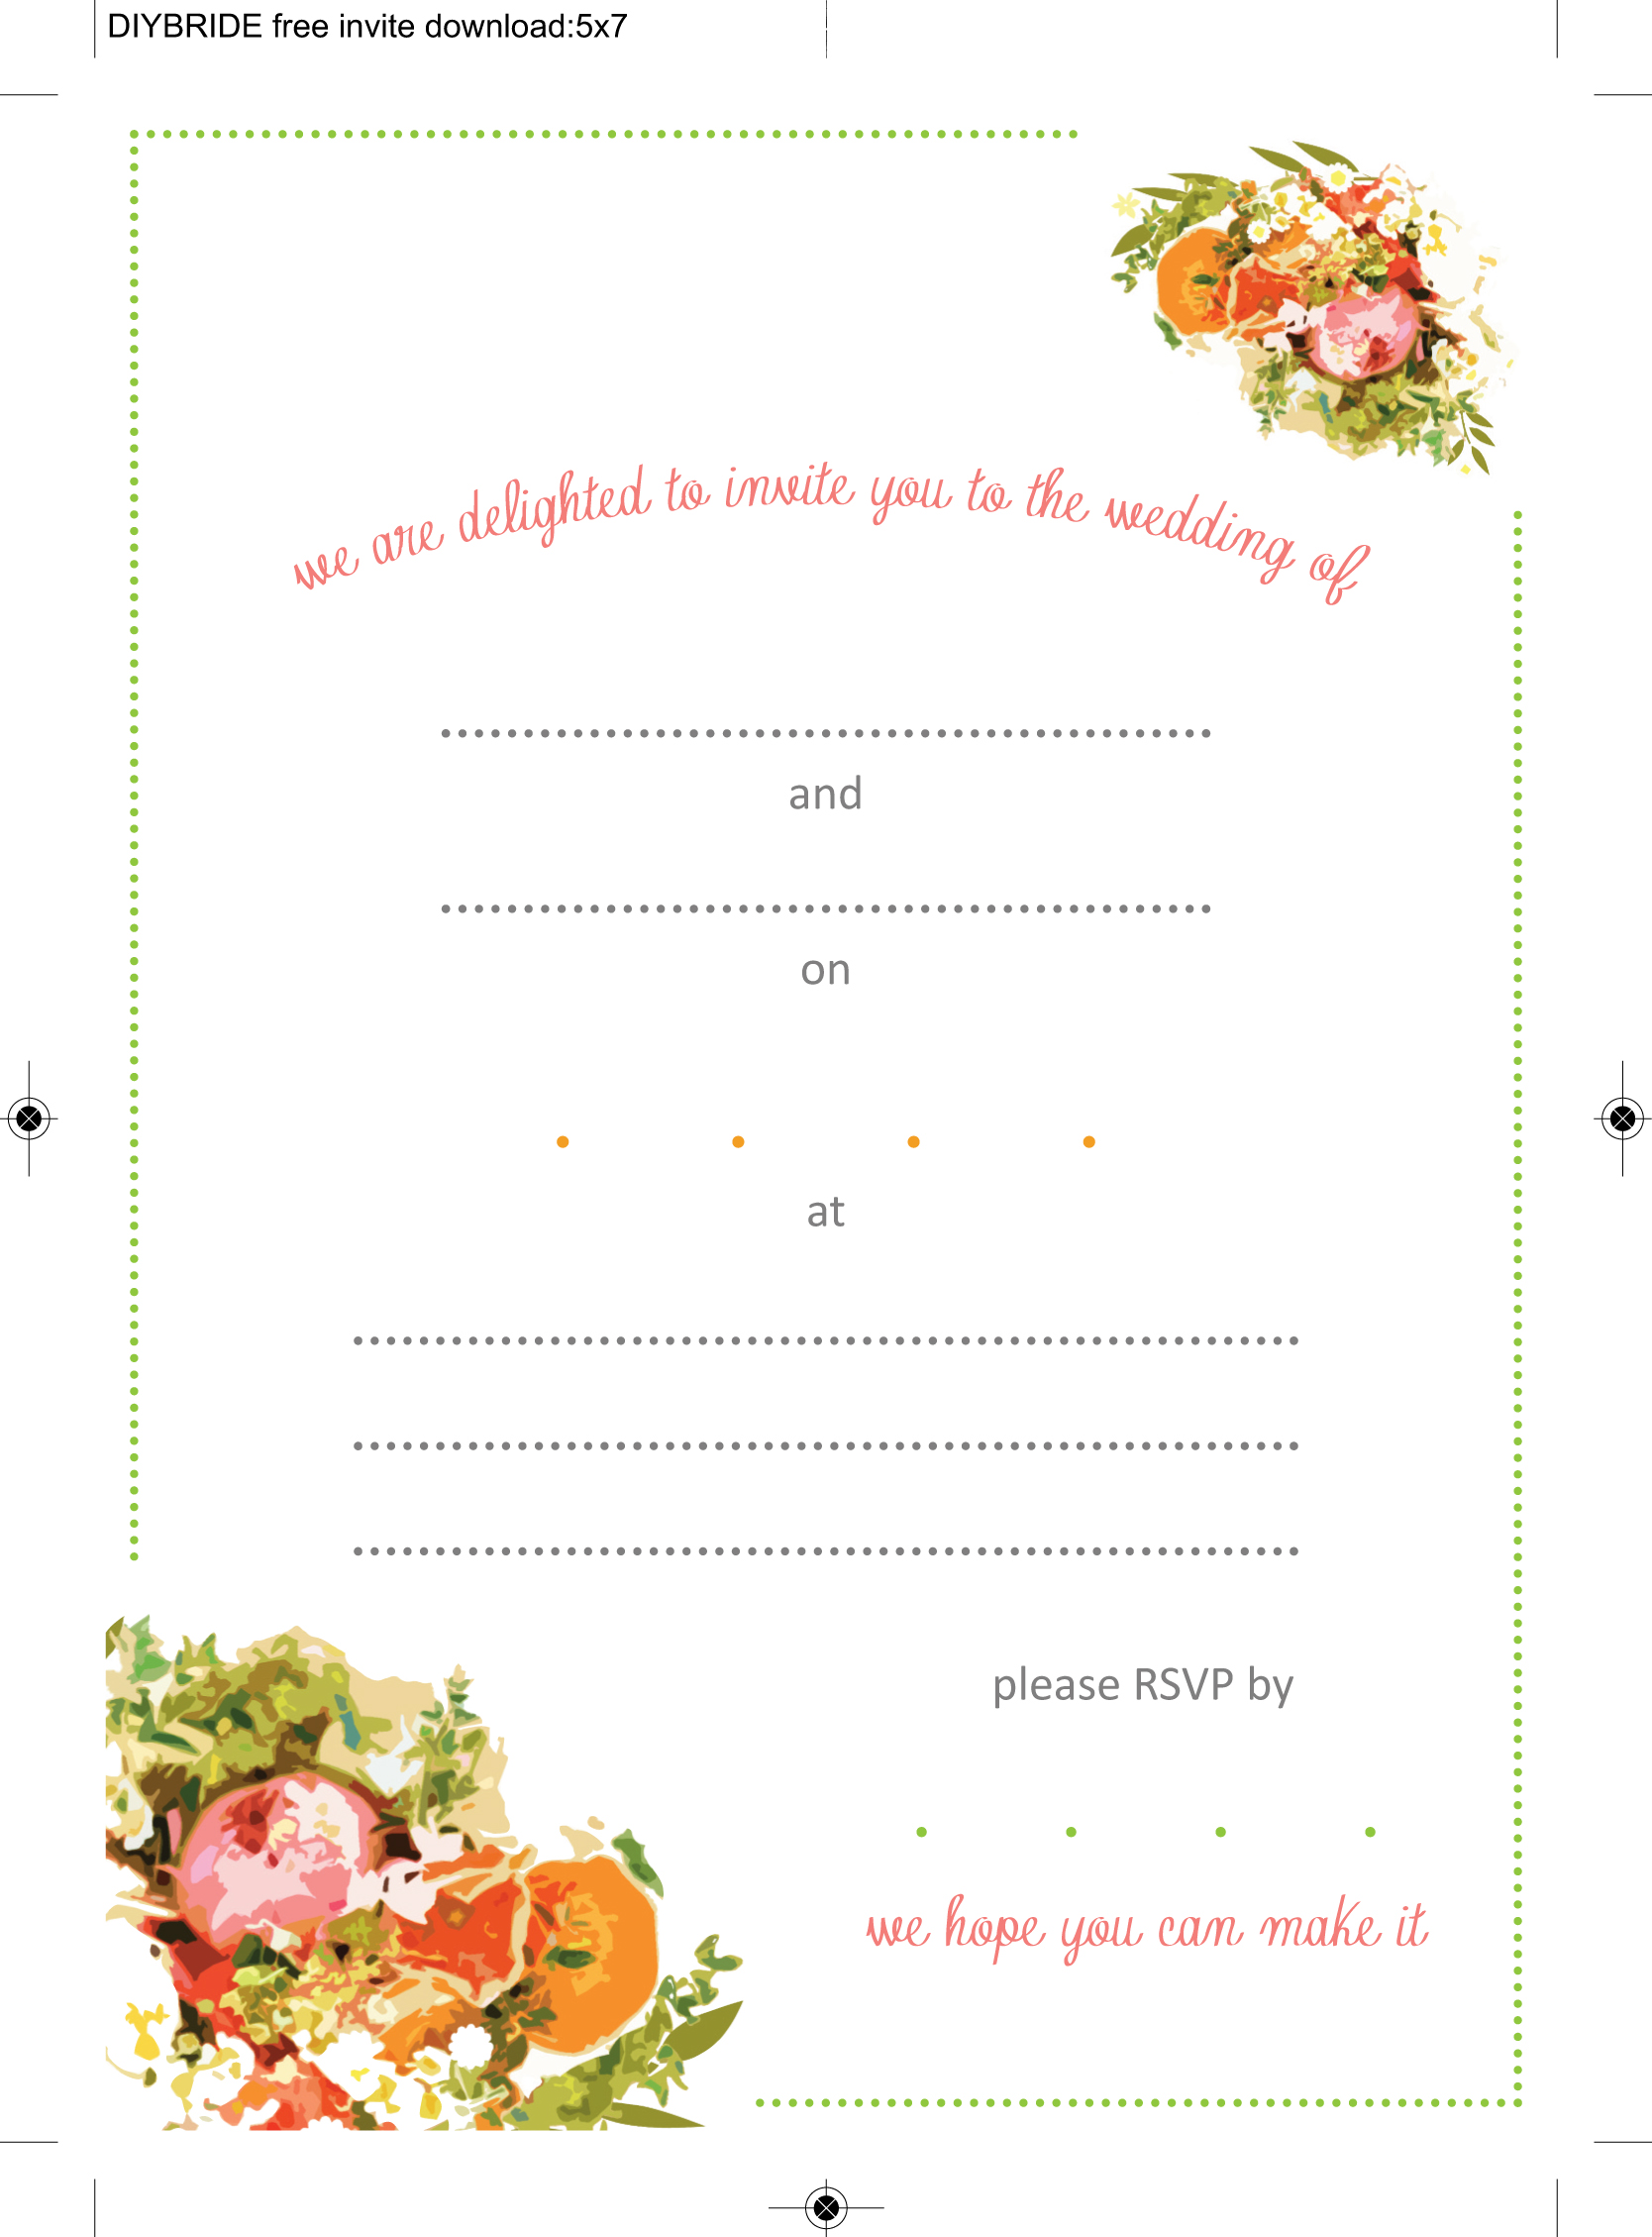 Wedding Invitation Templates That Are Cute And Easy to Make – Free Printable Blank Wedding Invitation Templates